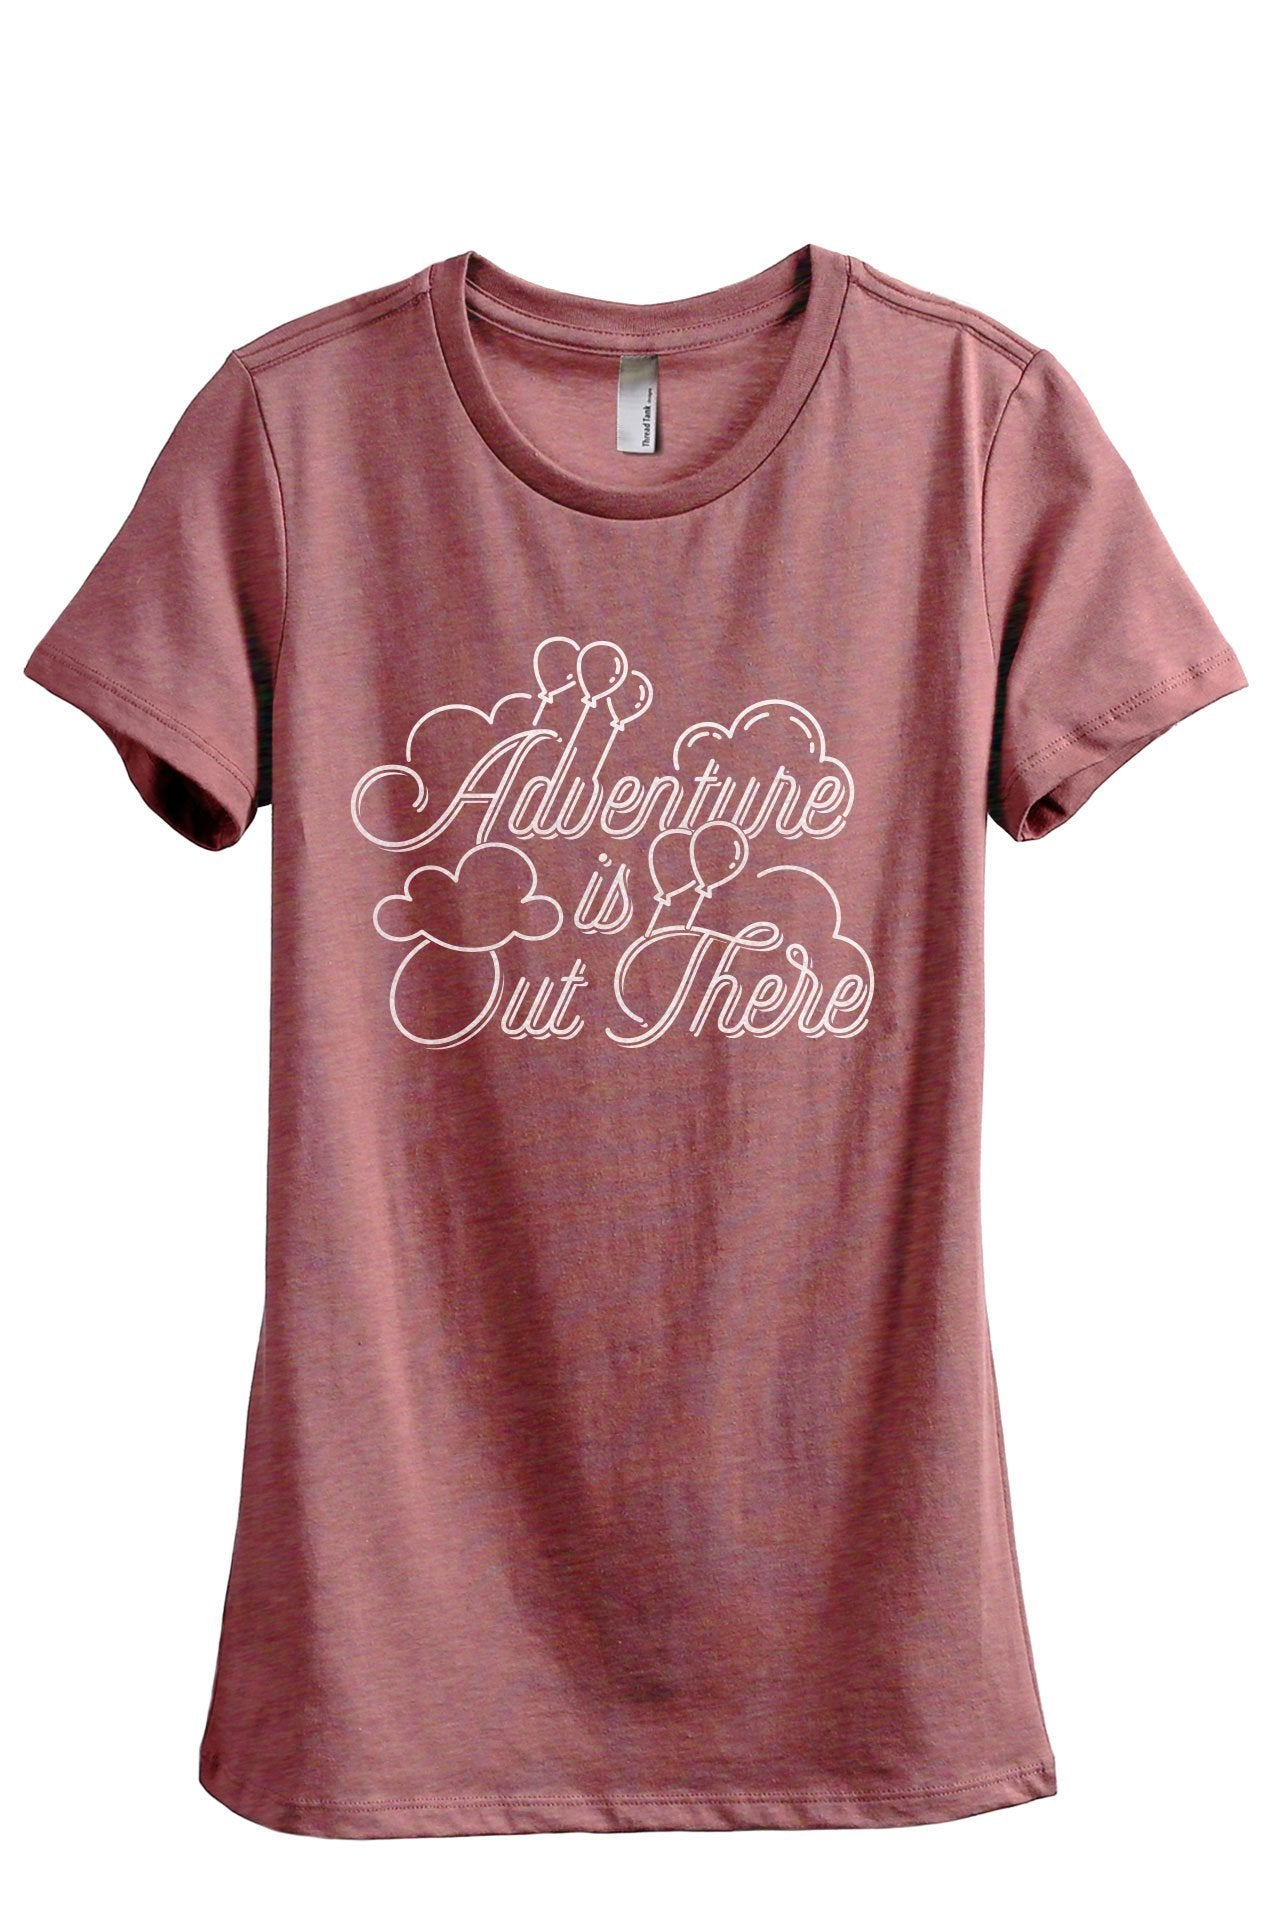 Adventure Is Out There Up Women's Relaxed Crewneck T-Shirt Top Tee Heather Rouge